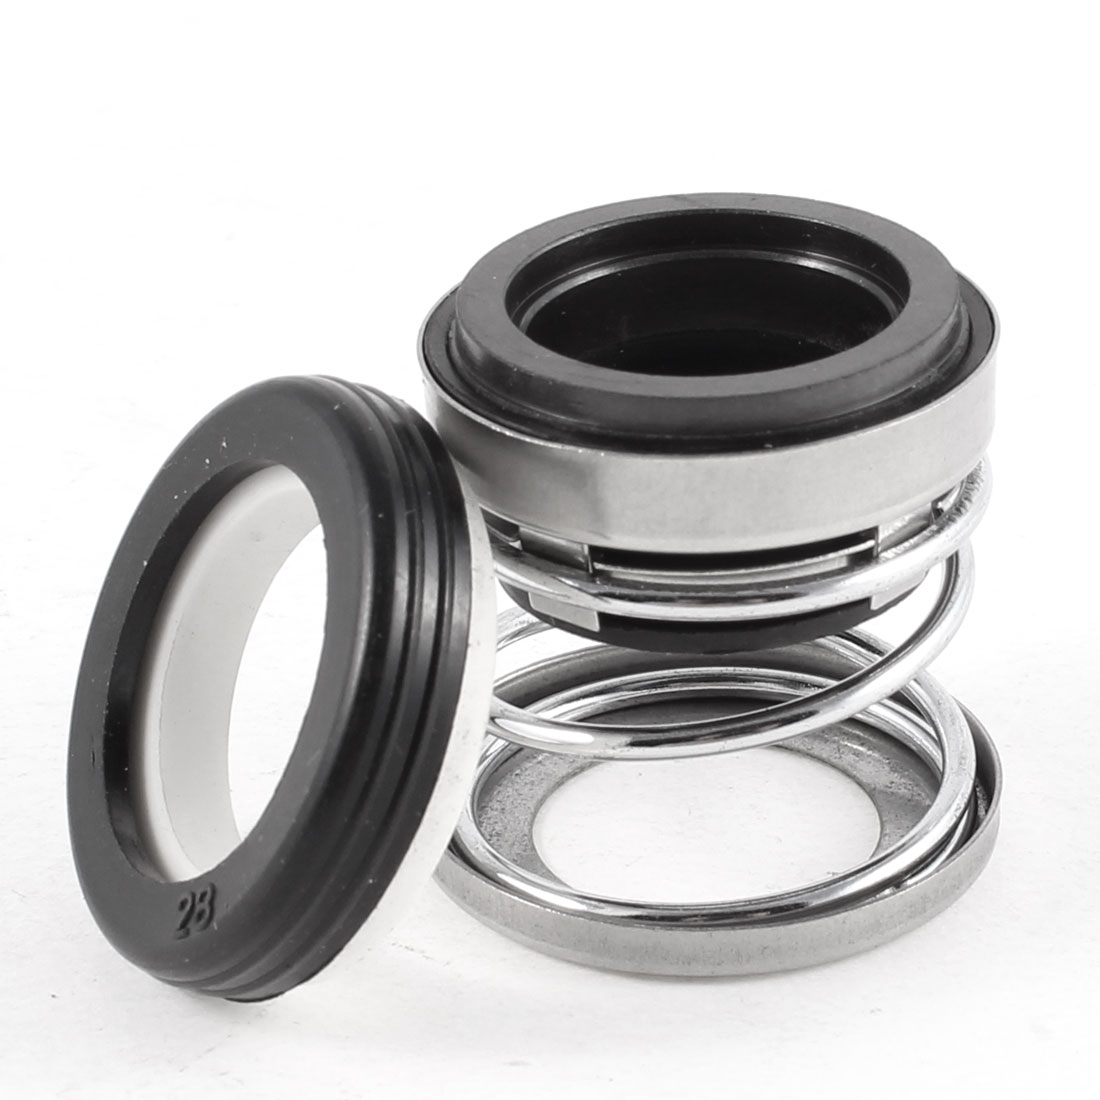 14mm Internal Diameter Mechanical Water Pump Shaft Seal Spare Parts